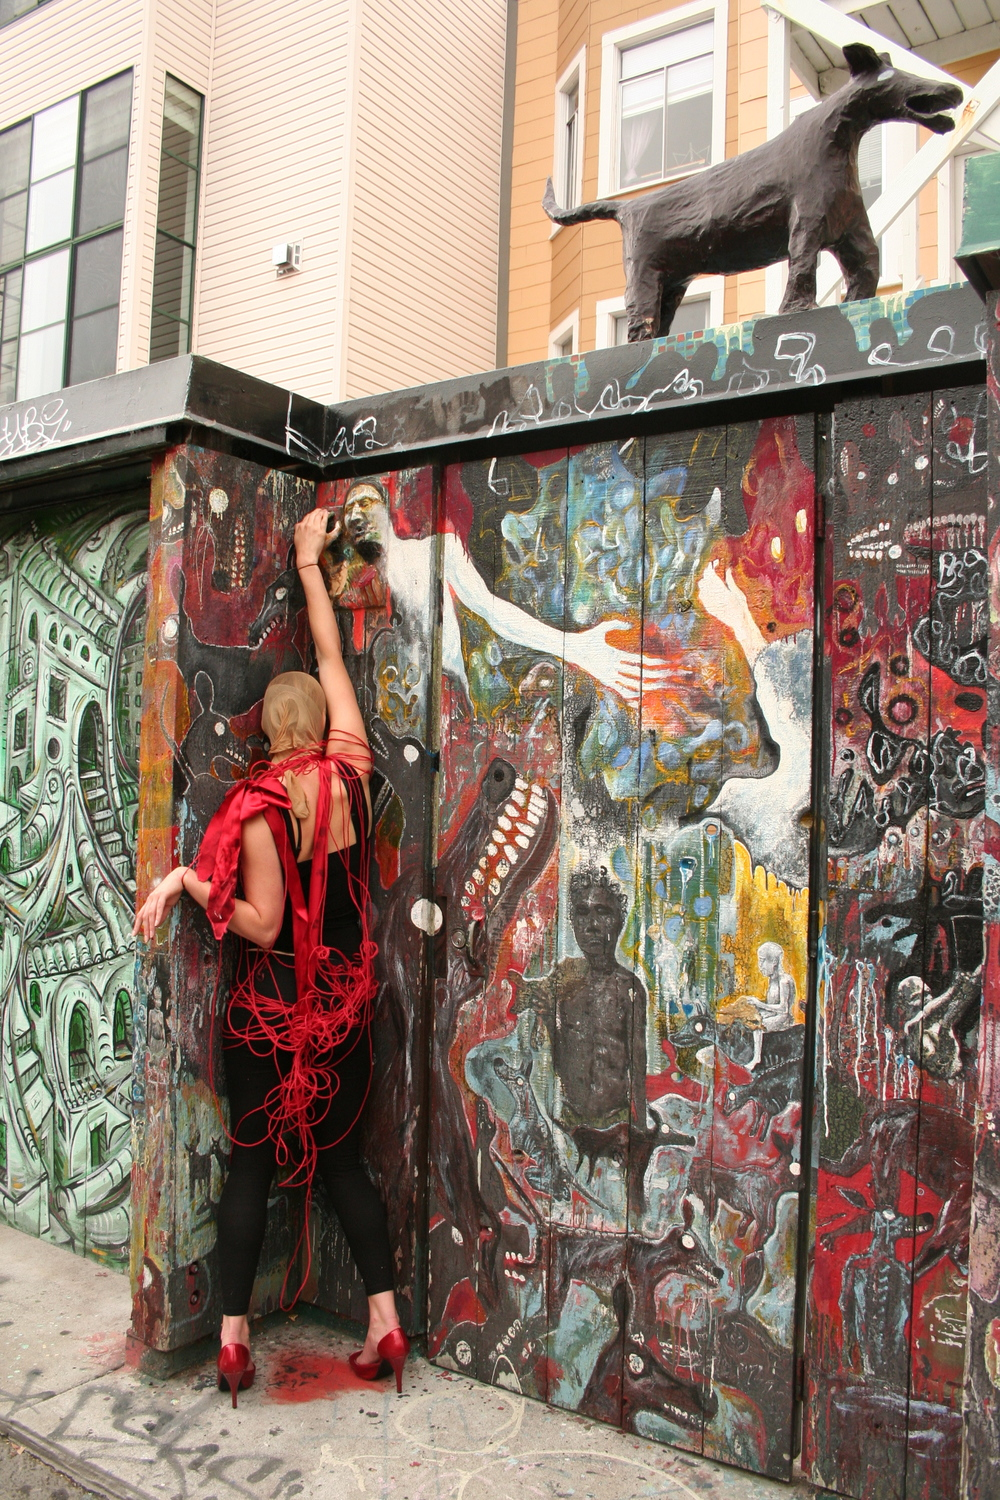 Allison Wyper in Clarion Alley, San Francisco. Photo by Jennifer Monge